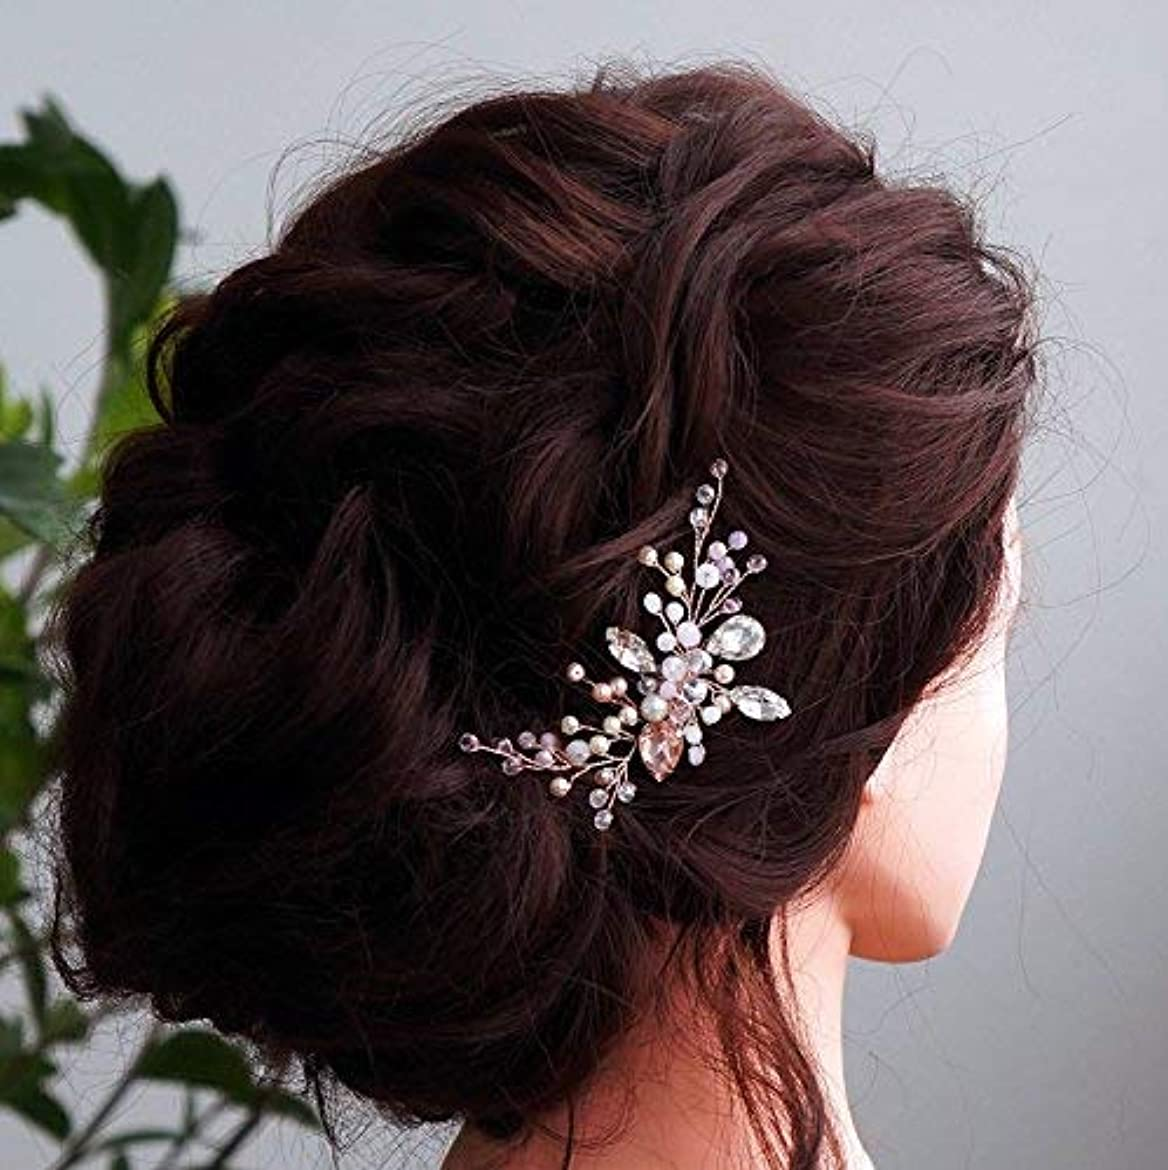 狂う報復事業内容Kercisbeauty Wedding Bridal Bridesmaids Flower Girl Pink Crystal Beads and Rhinestone Tiny Cute Hair Comb Headband...